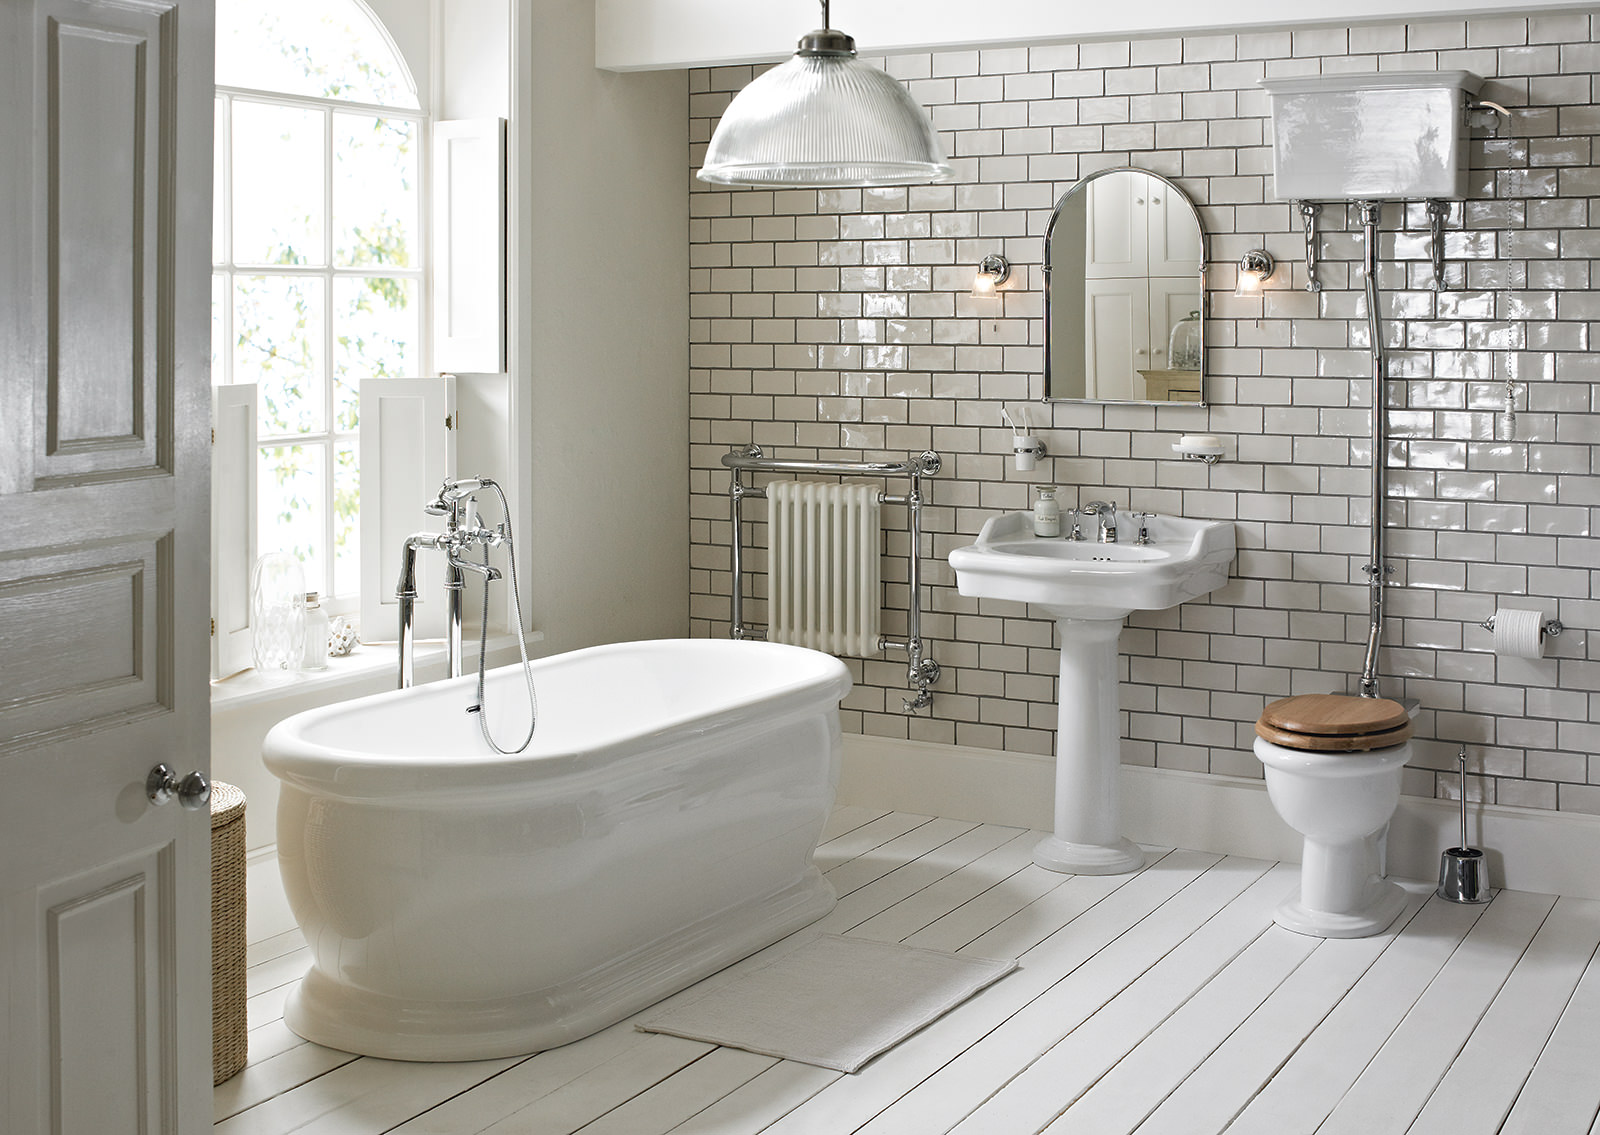 Heritage victoria high level wc and cistern with flush pack for Oversized baths